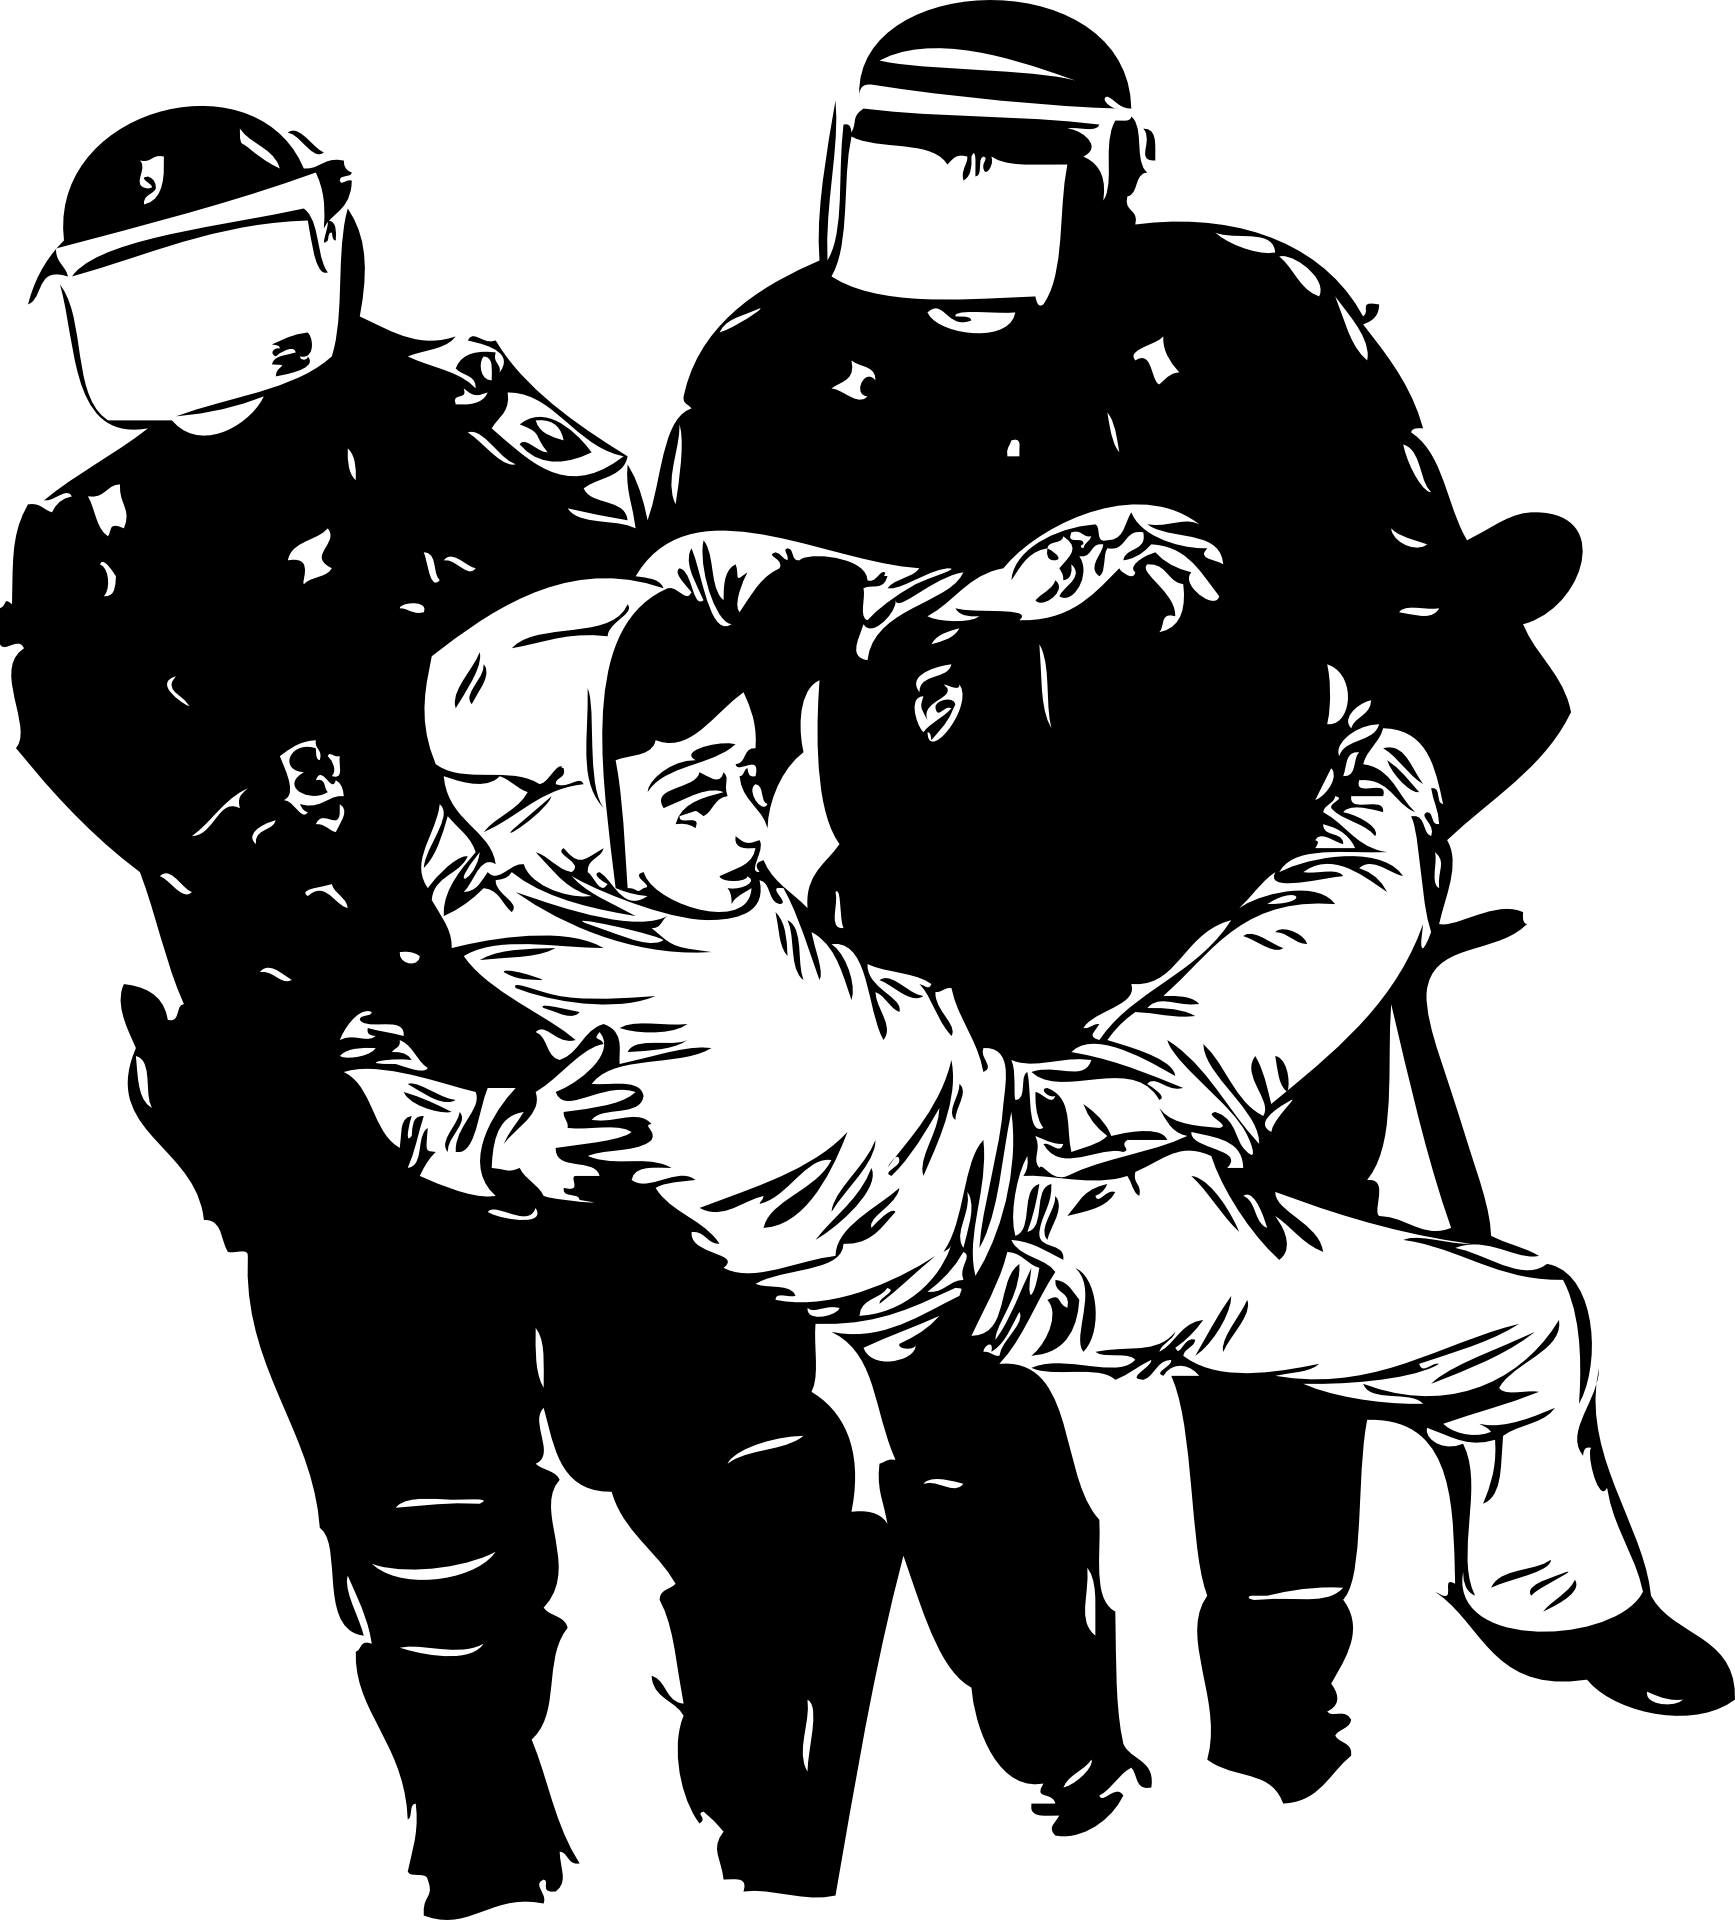 Shooting drawing cop. Ethical implications of victim